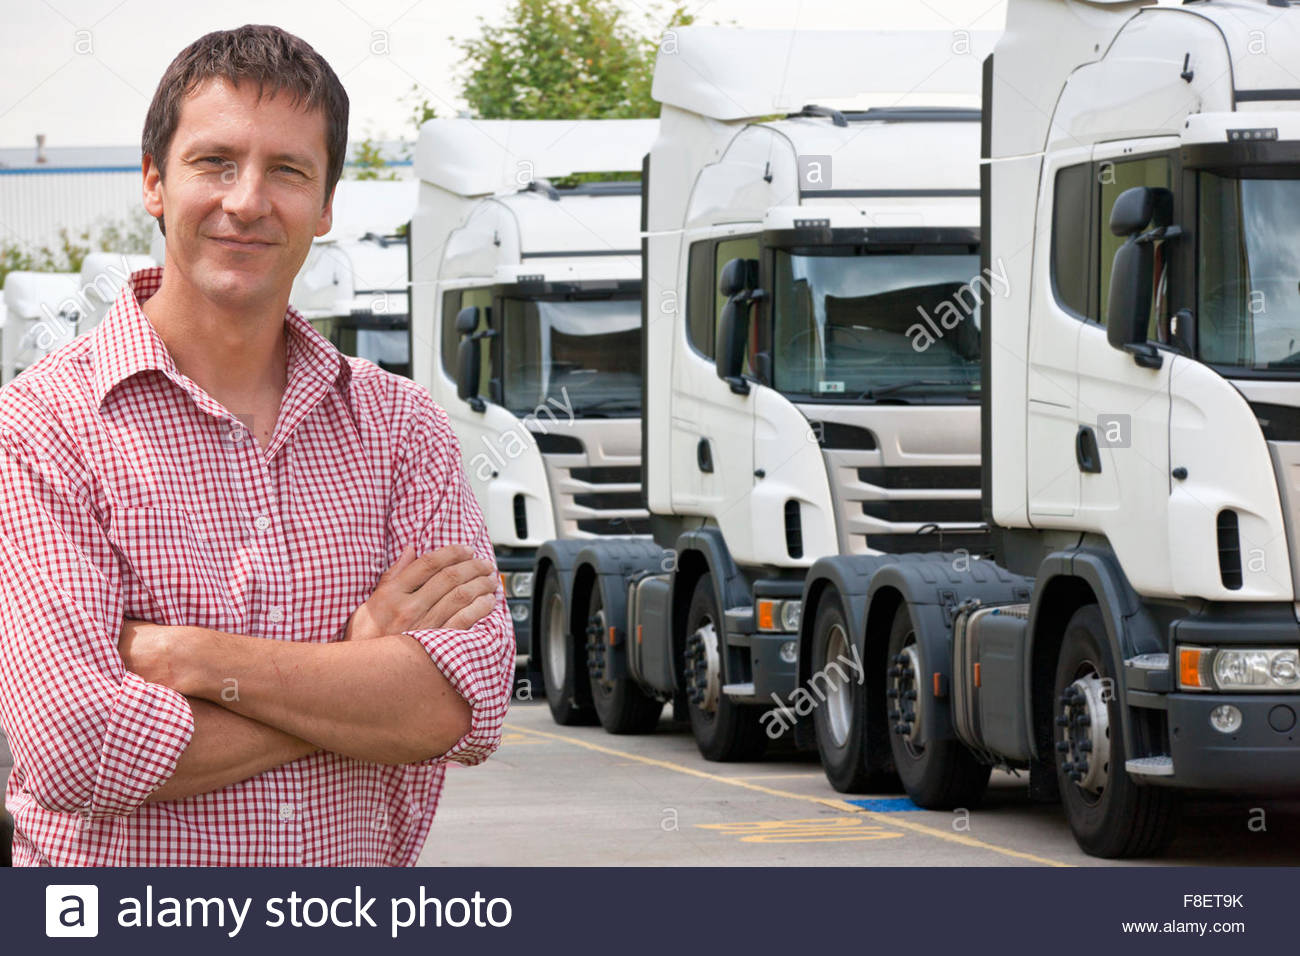 Portrait of confident freight transportation truck driver owner near trucks parked in a row - Stock Image